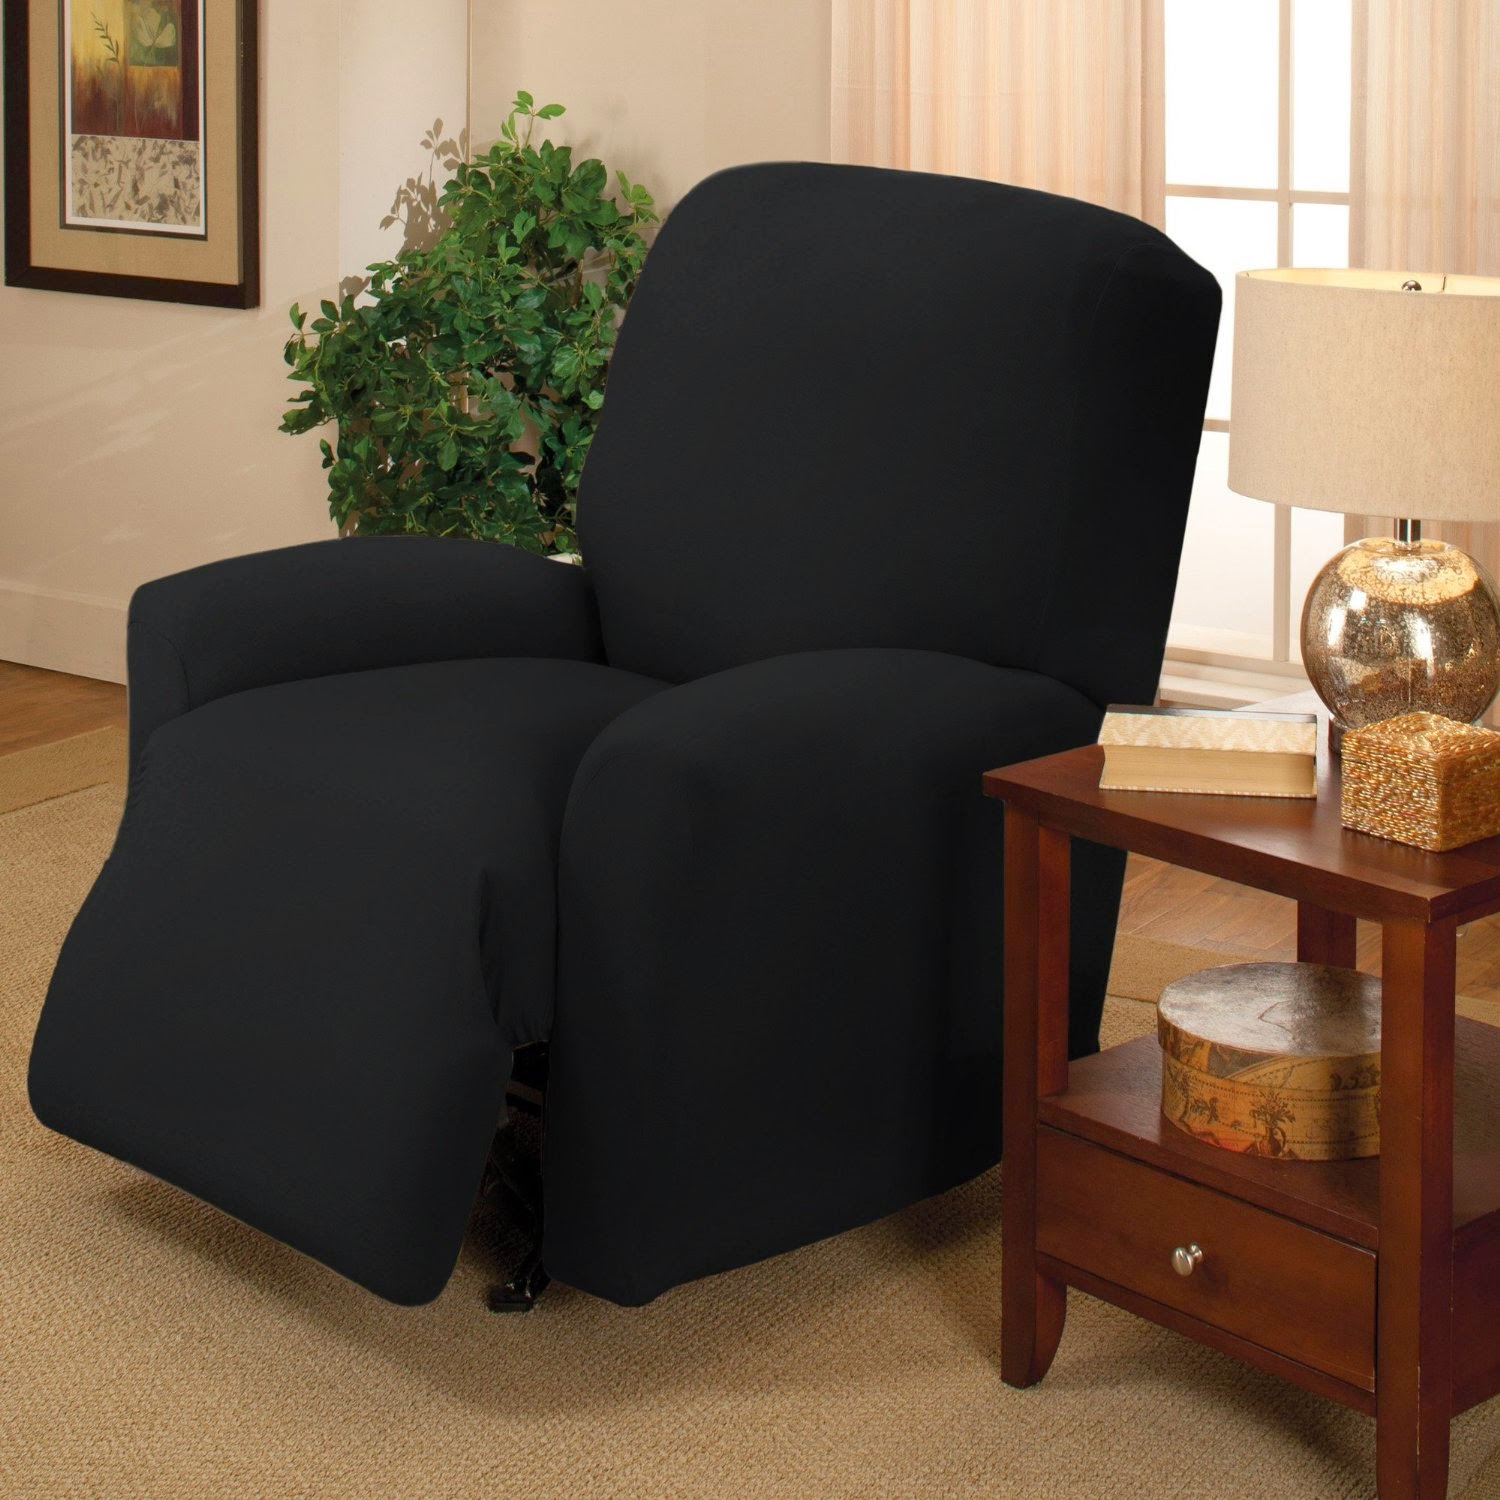 Sofa Recliner Sale Recliner Sofa Slipcovers Walmart